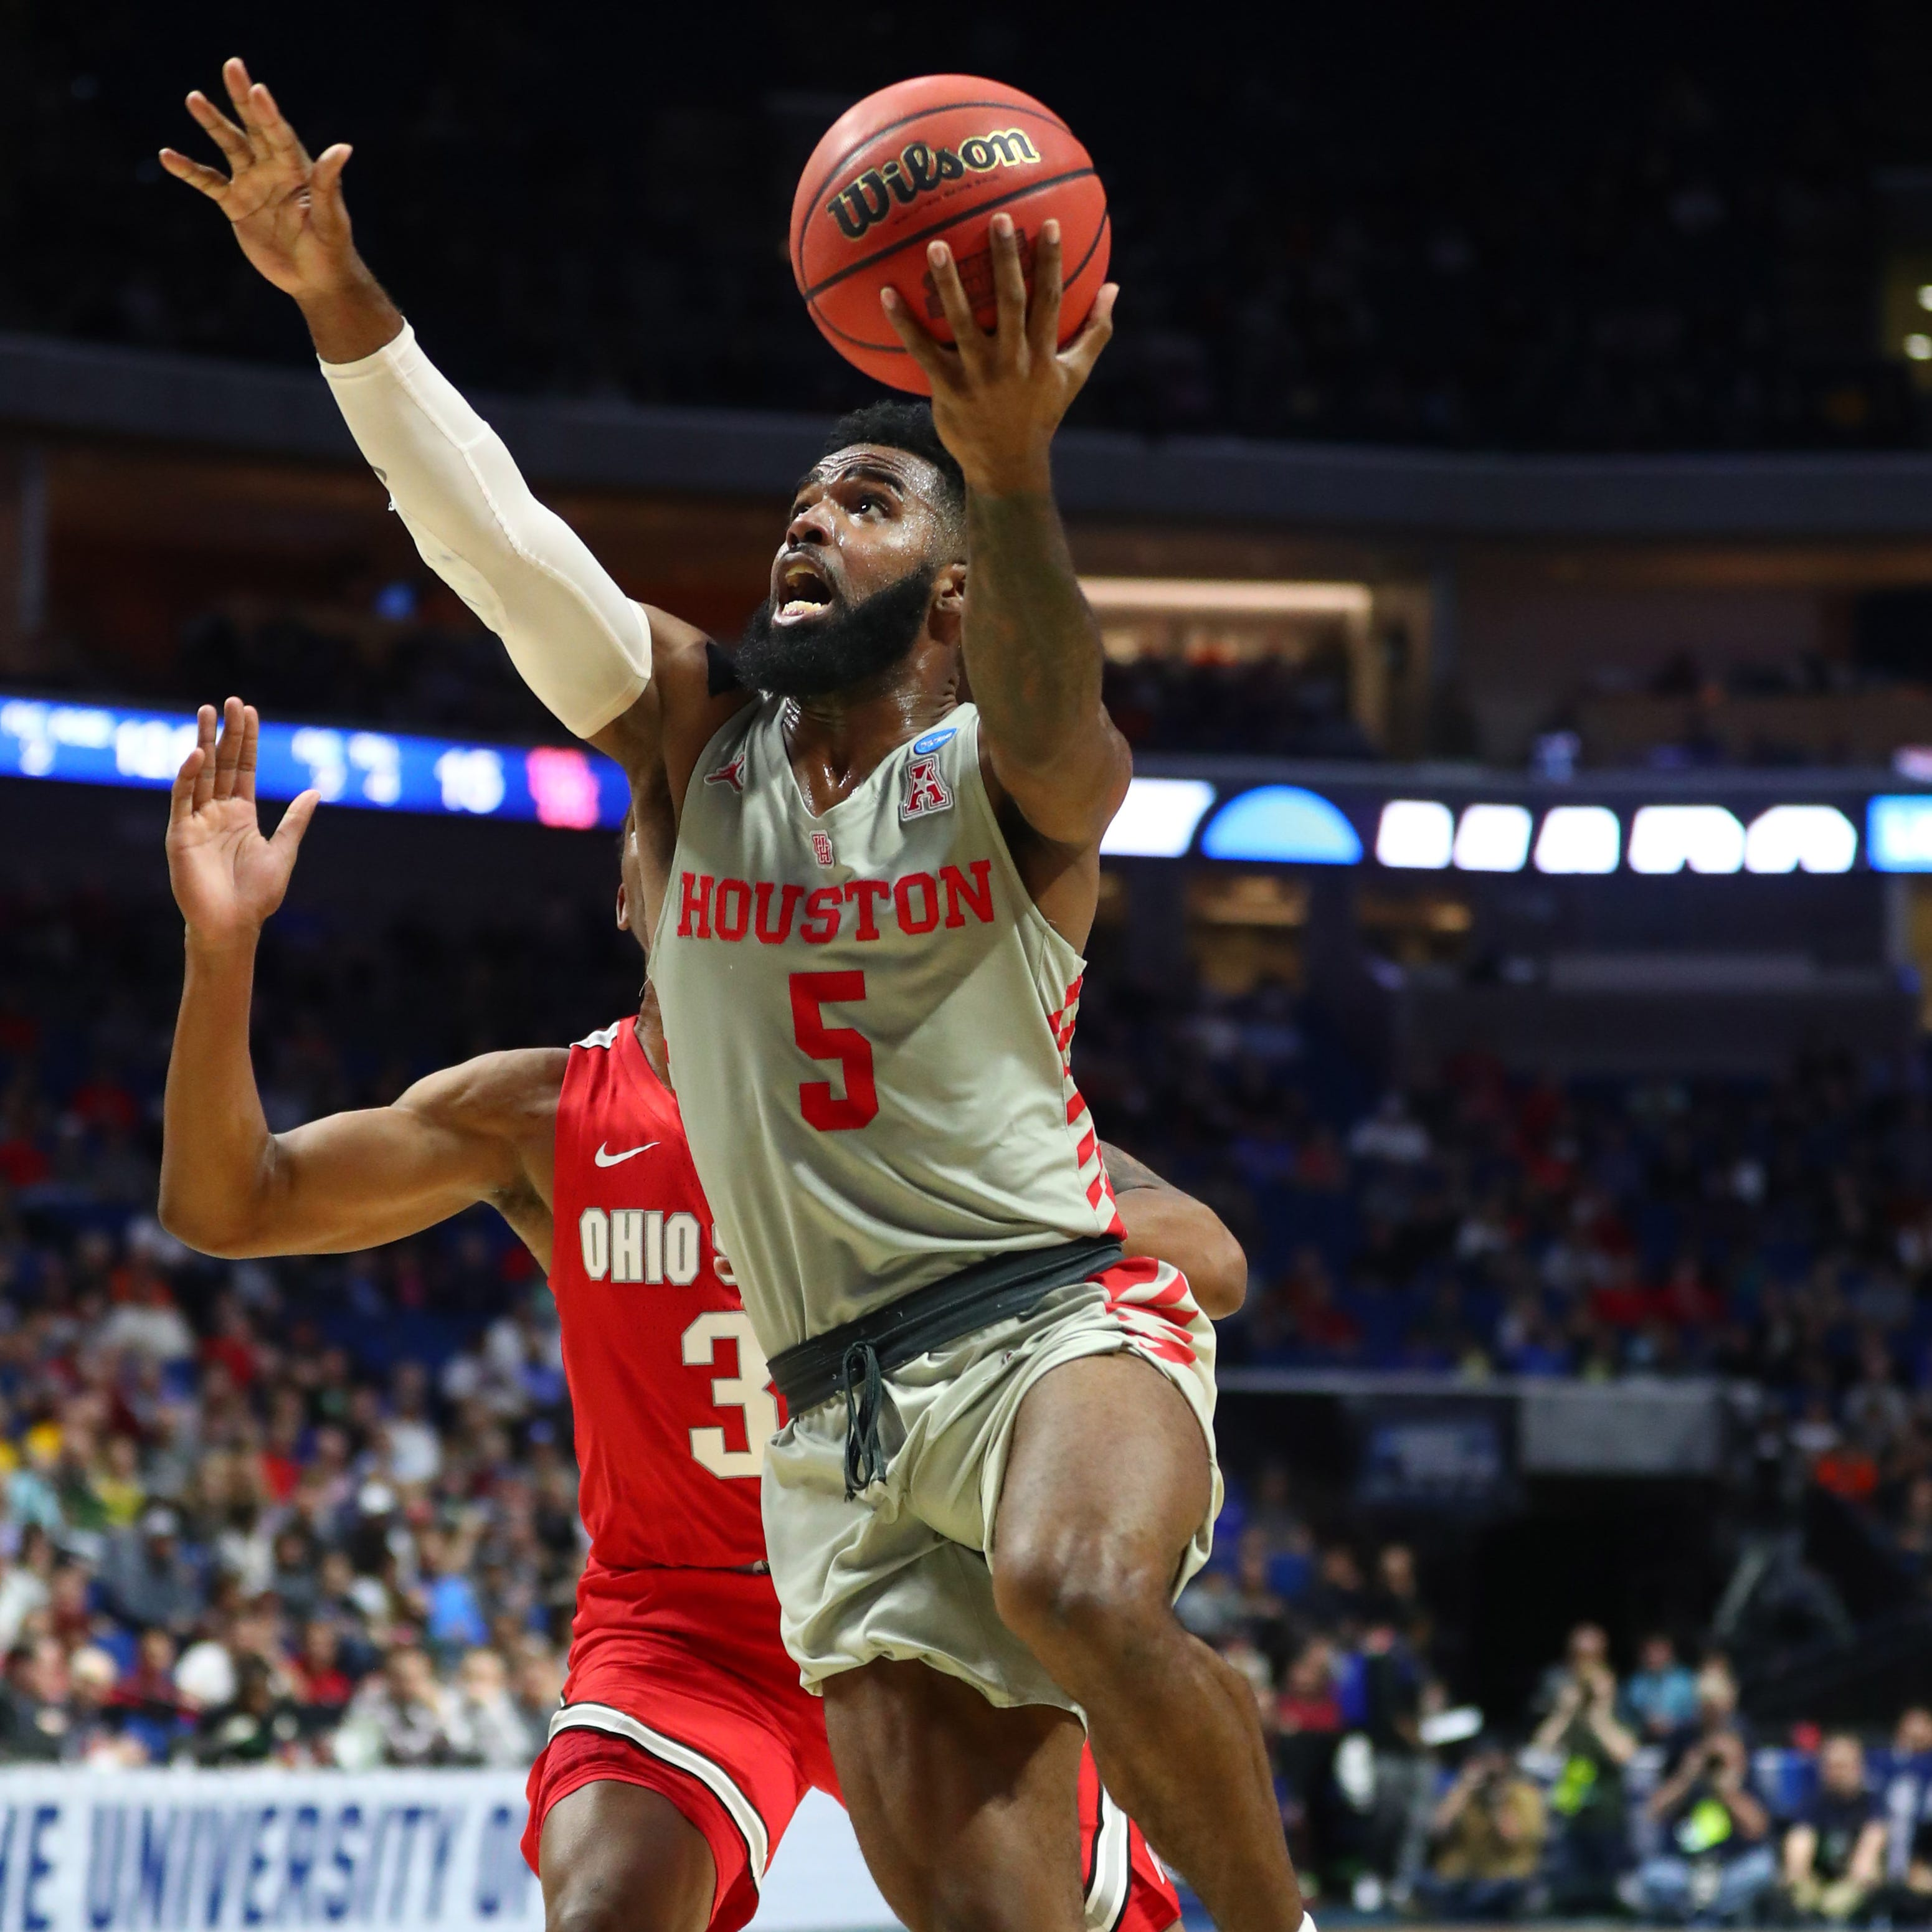 Get to know the Houston Cougars, Kentucky basketball's next foe